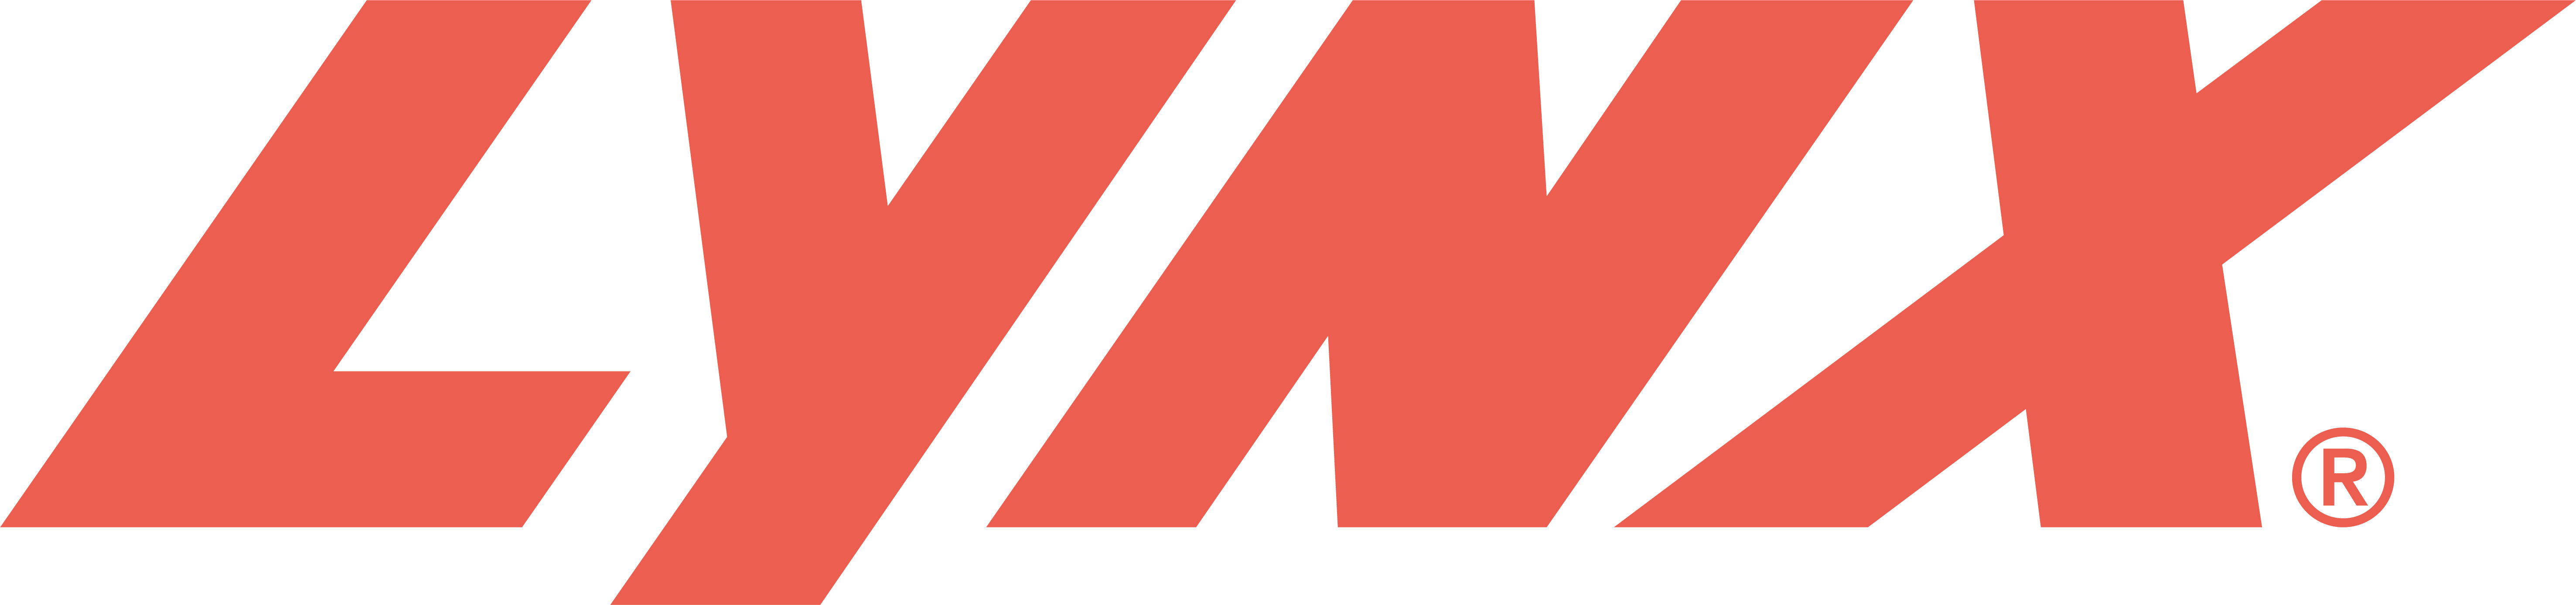 lynx_logo_warm_red_020719043028.png